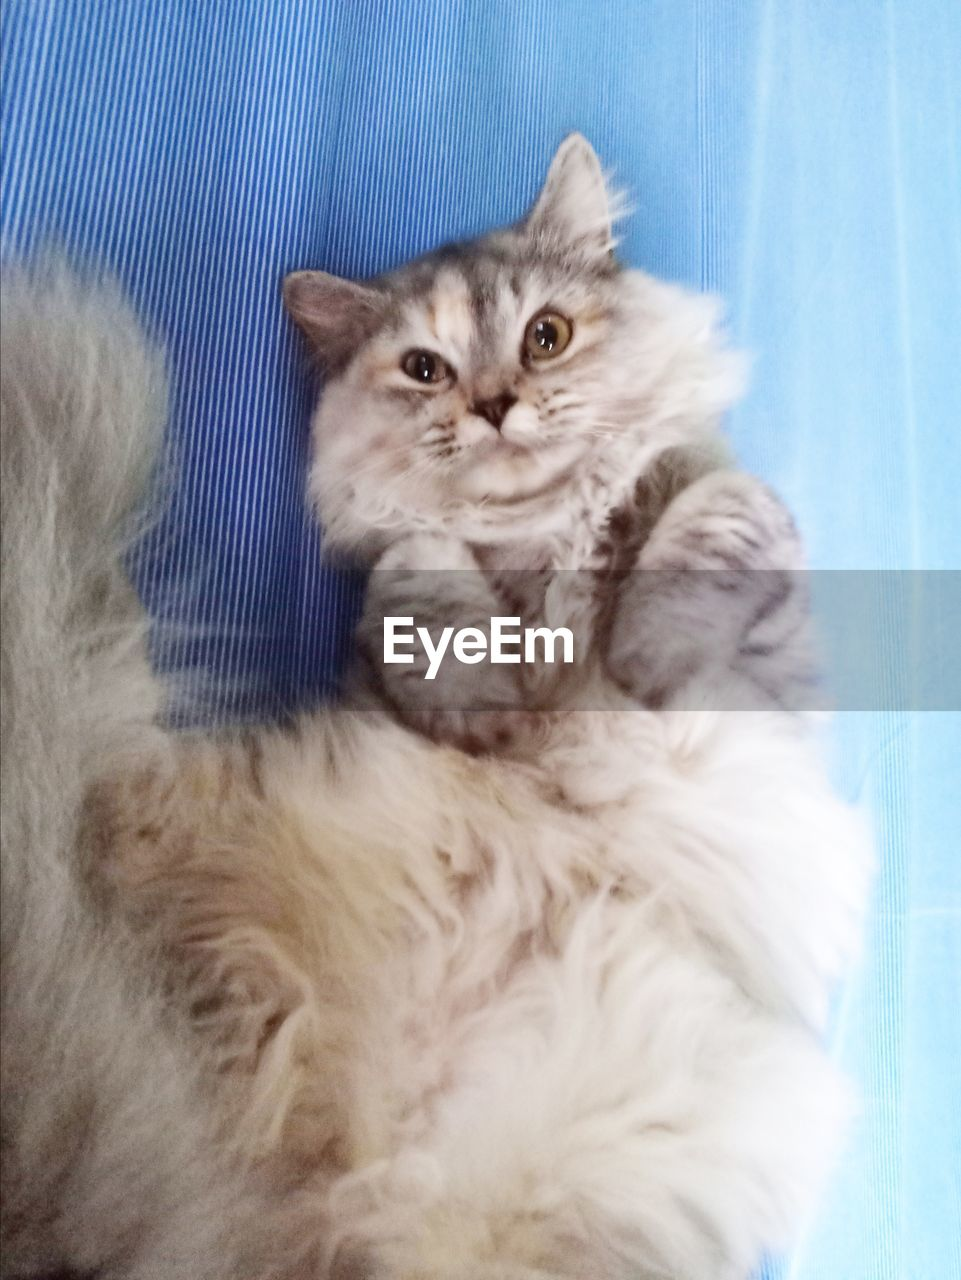 pets, domestic, animal themes, animal, mammal, domestic animals, domestic cat, cat, feline, one animal, indoors, no people, vertebrate, portrait, looking at camera, relaxation, looking, persian cat, whisker, softness, maine coon cat